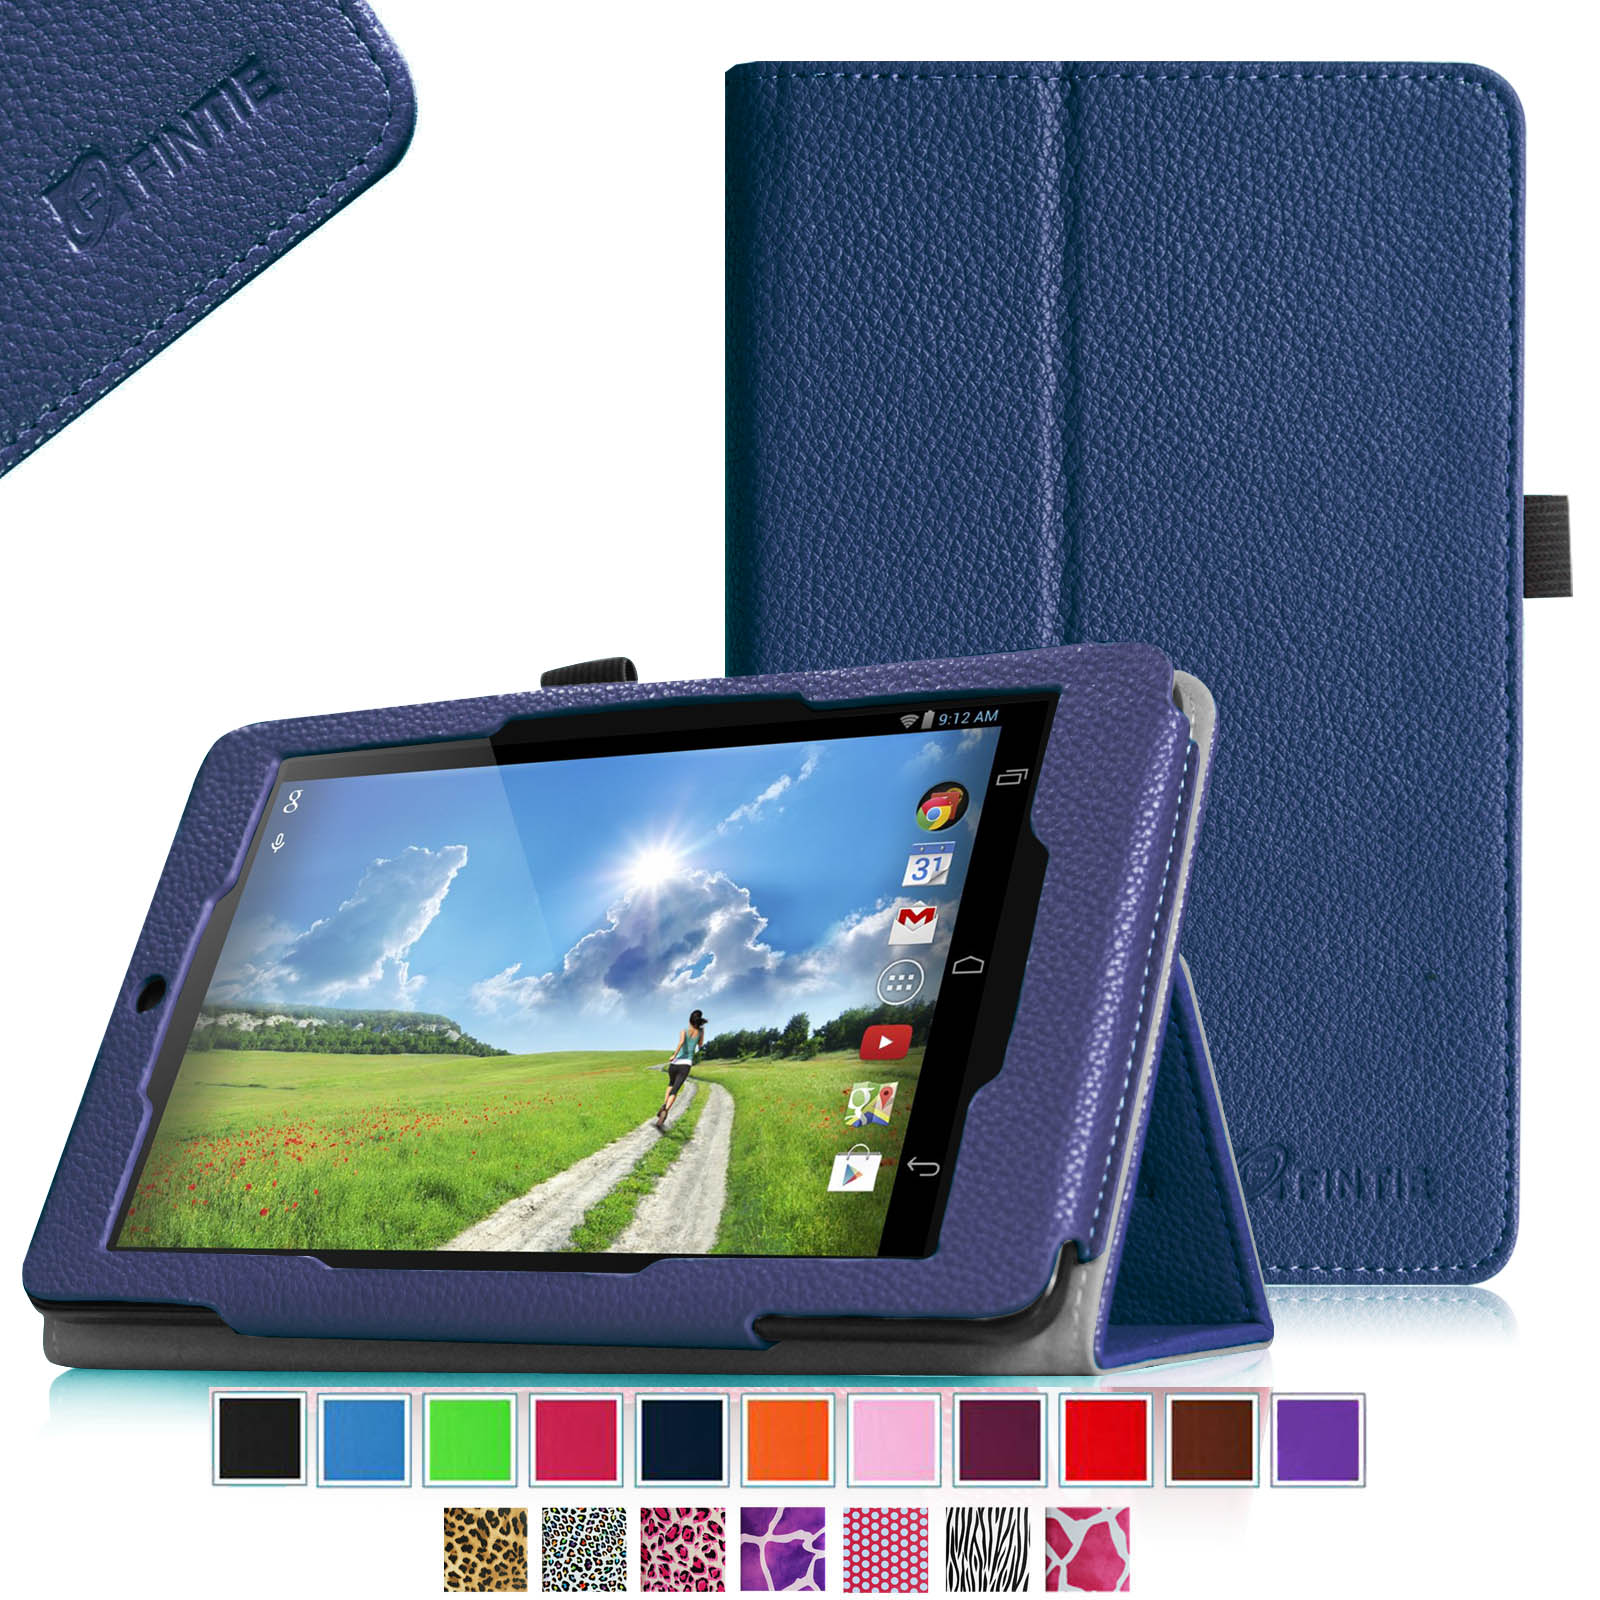 Fintie Acer Iconia One 7 B1-730HD Tablet Folio Case - Premium Vegan Leather Cover with Stylus Holder, Navy